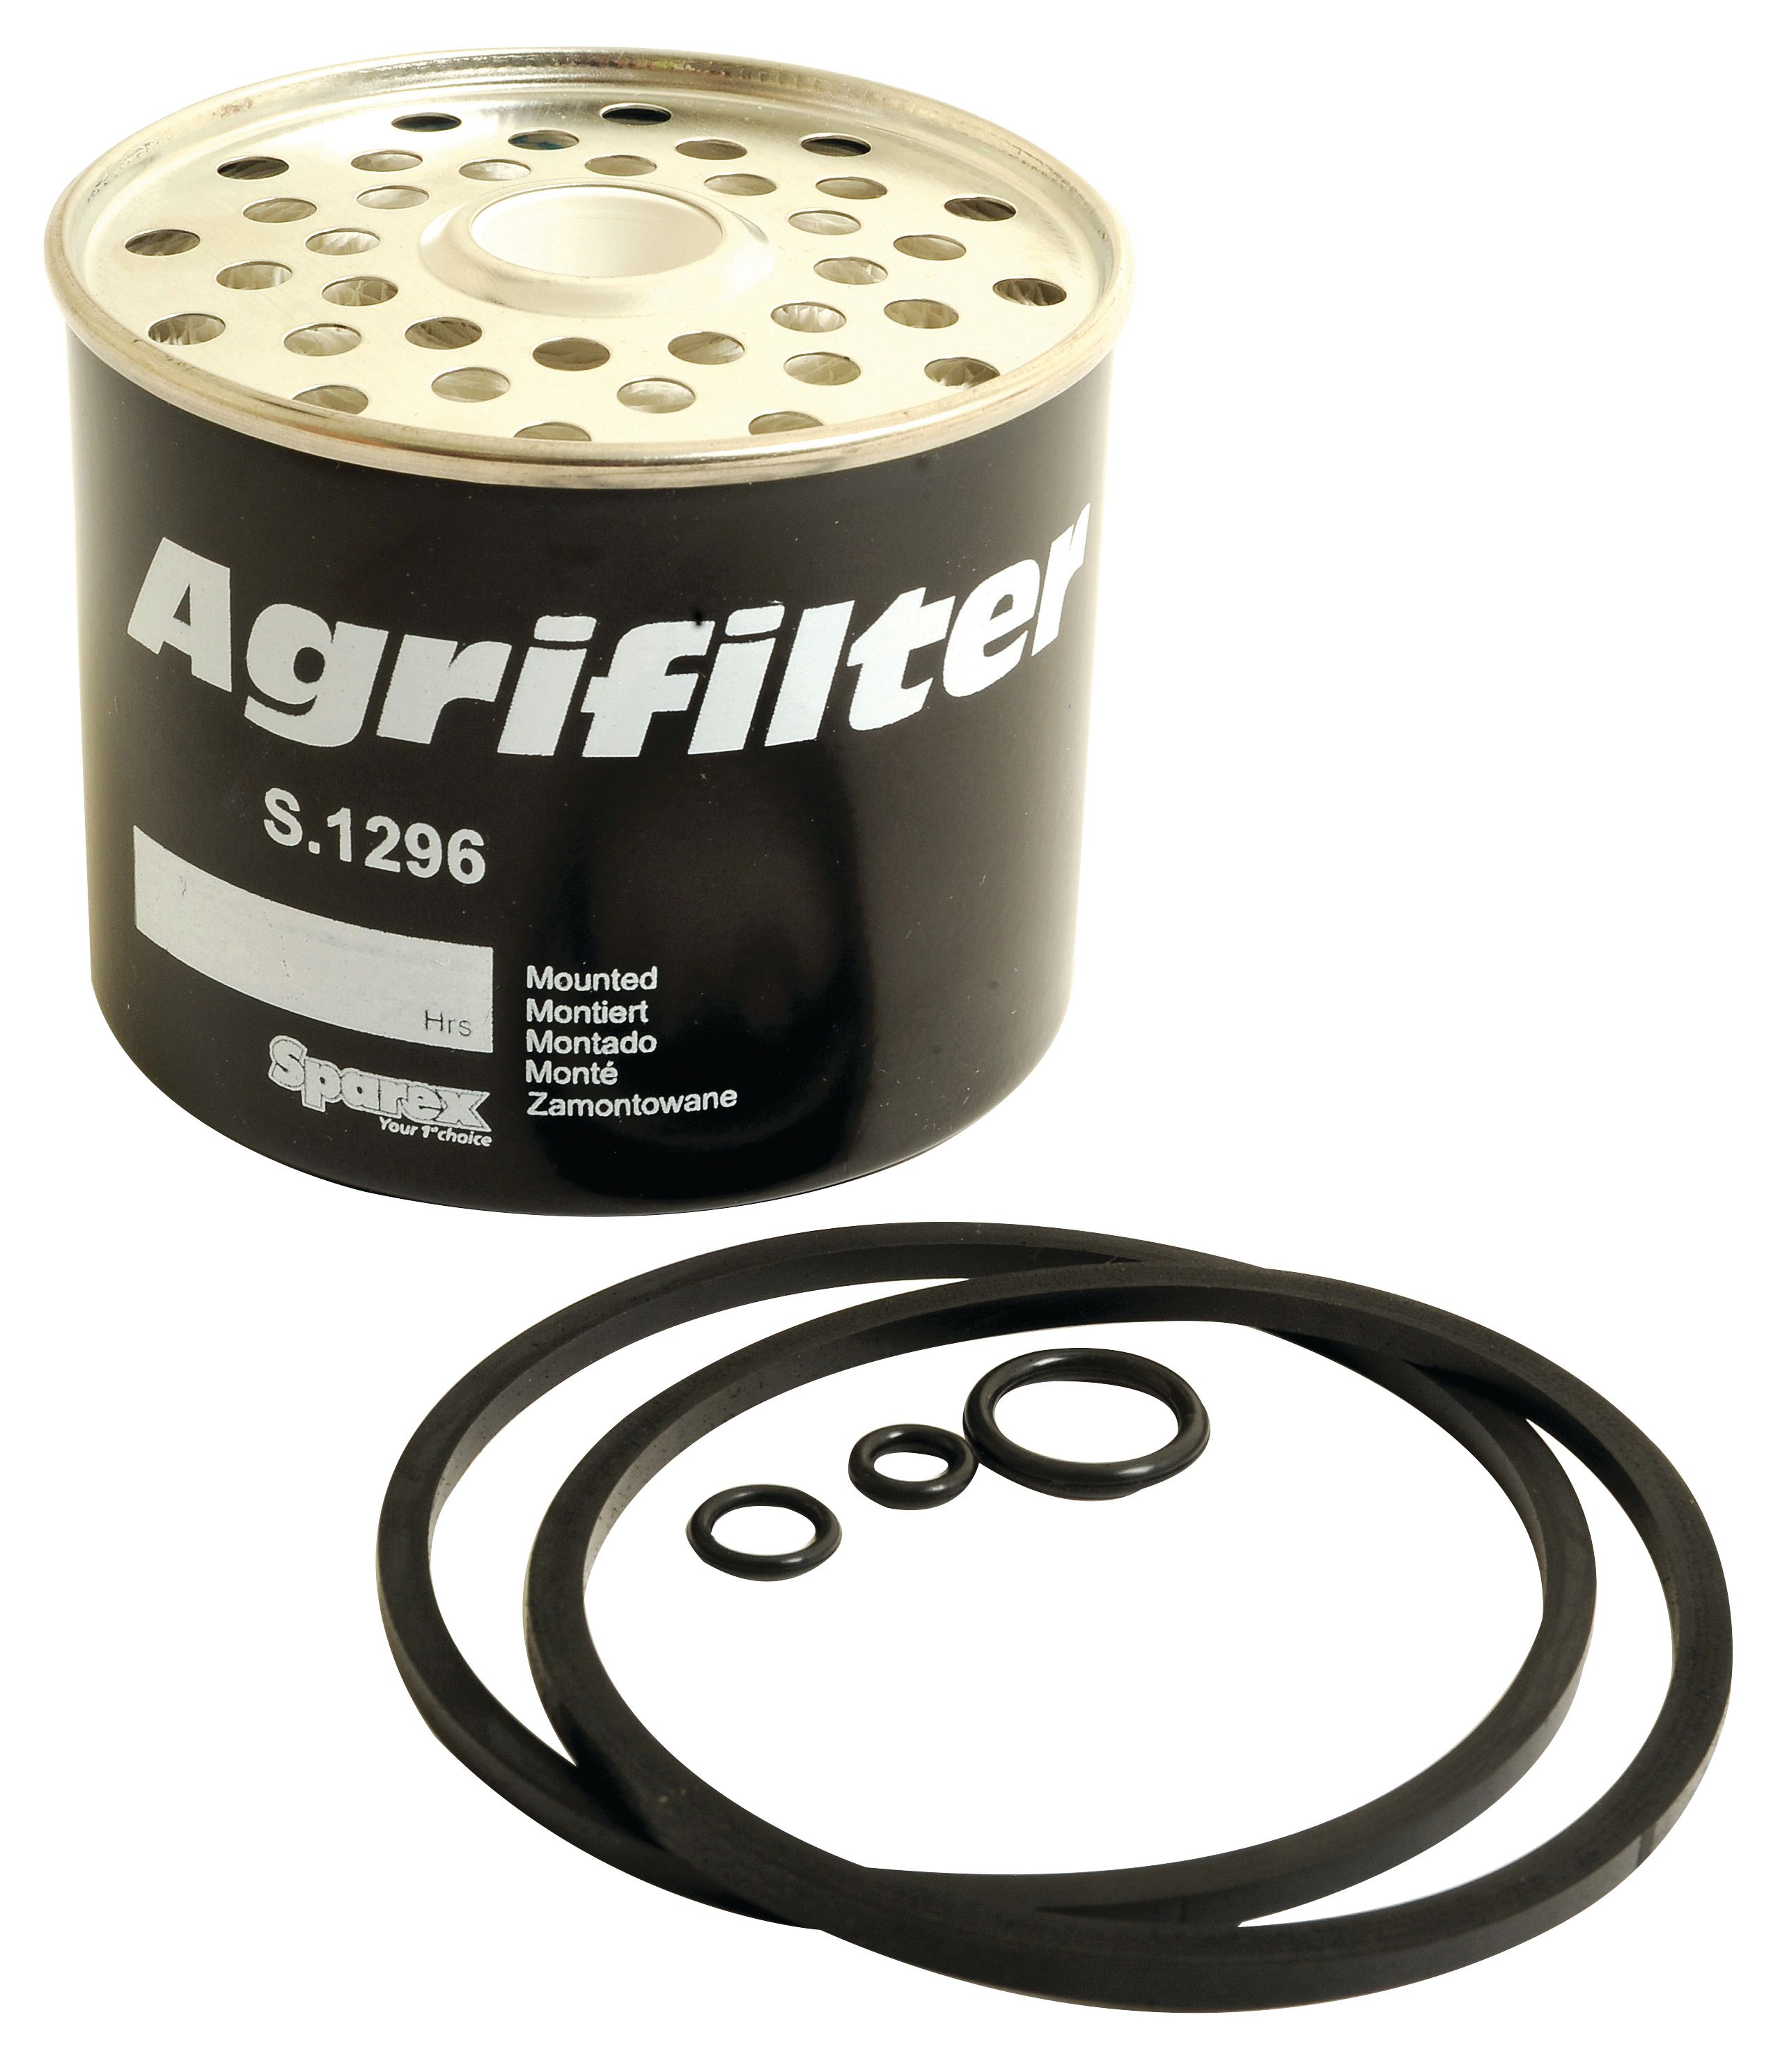 SATOH FUEL FILTER 1296